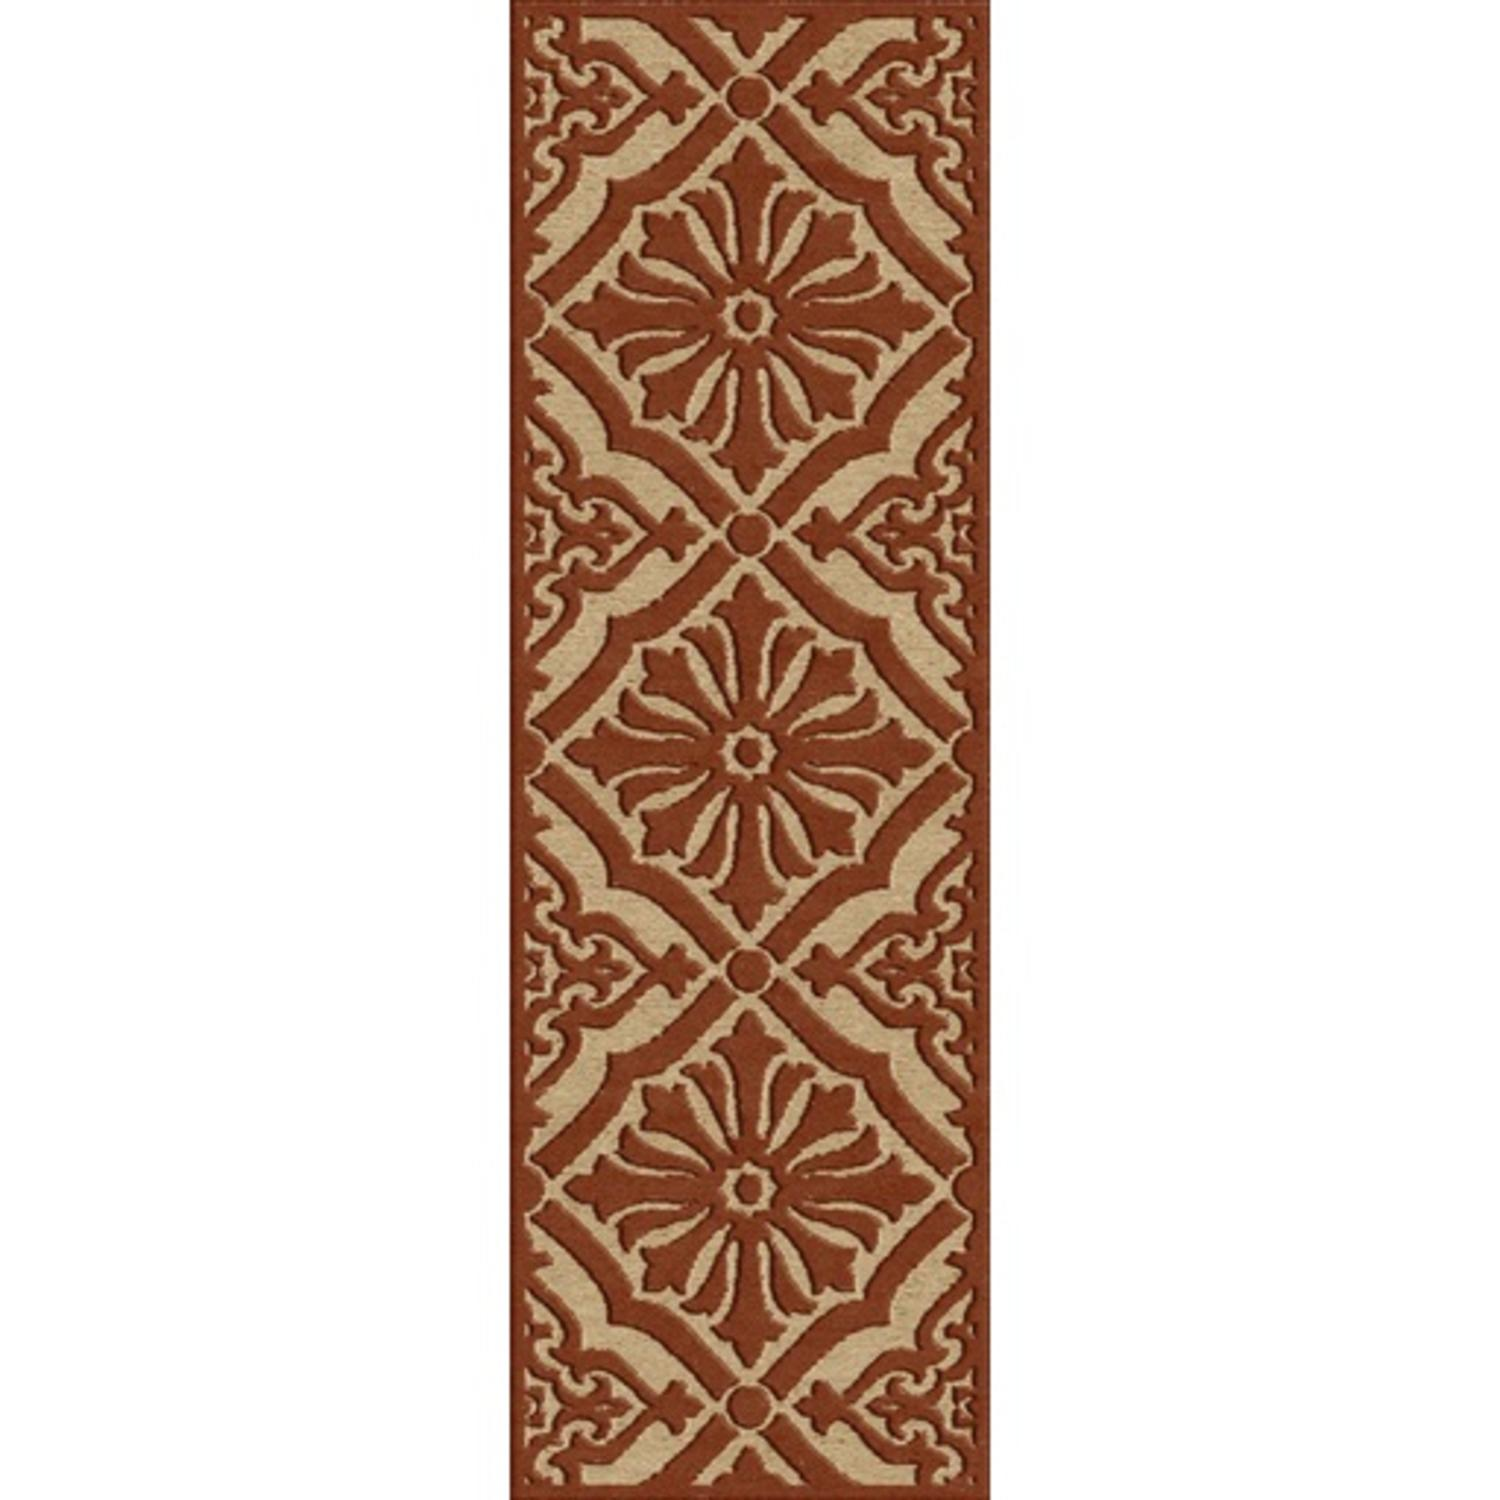 2.5' x 7.85' Regal Floral Yellow Gold and Auburn Brown Outdoor Area